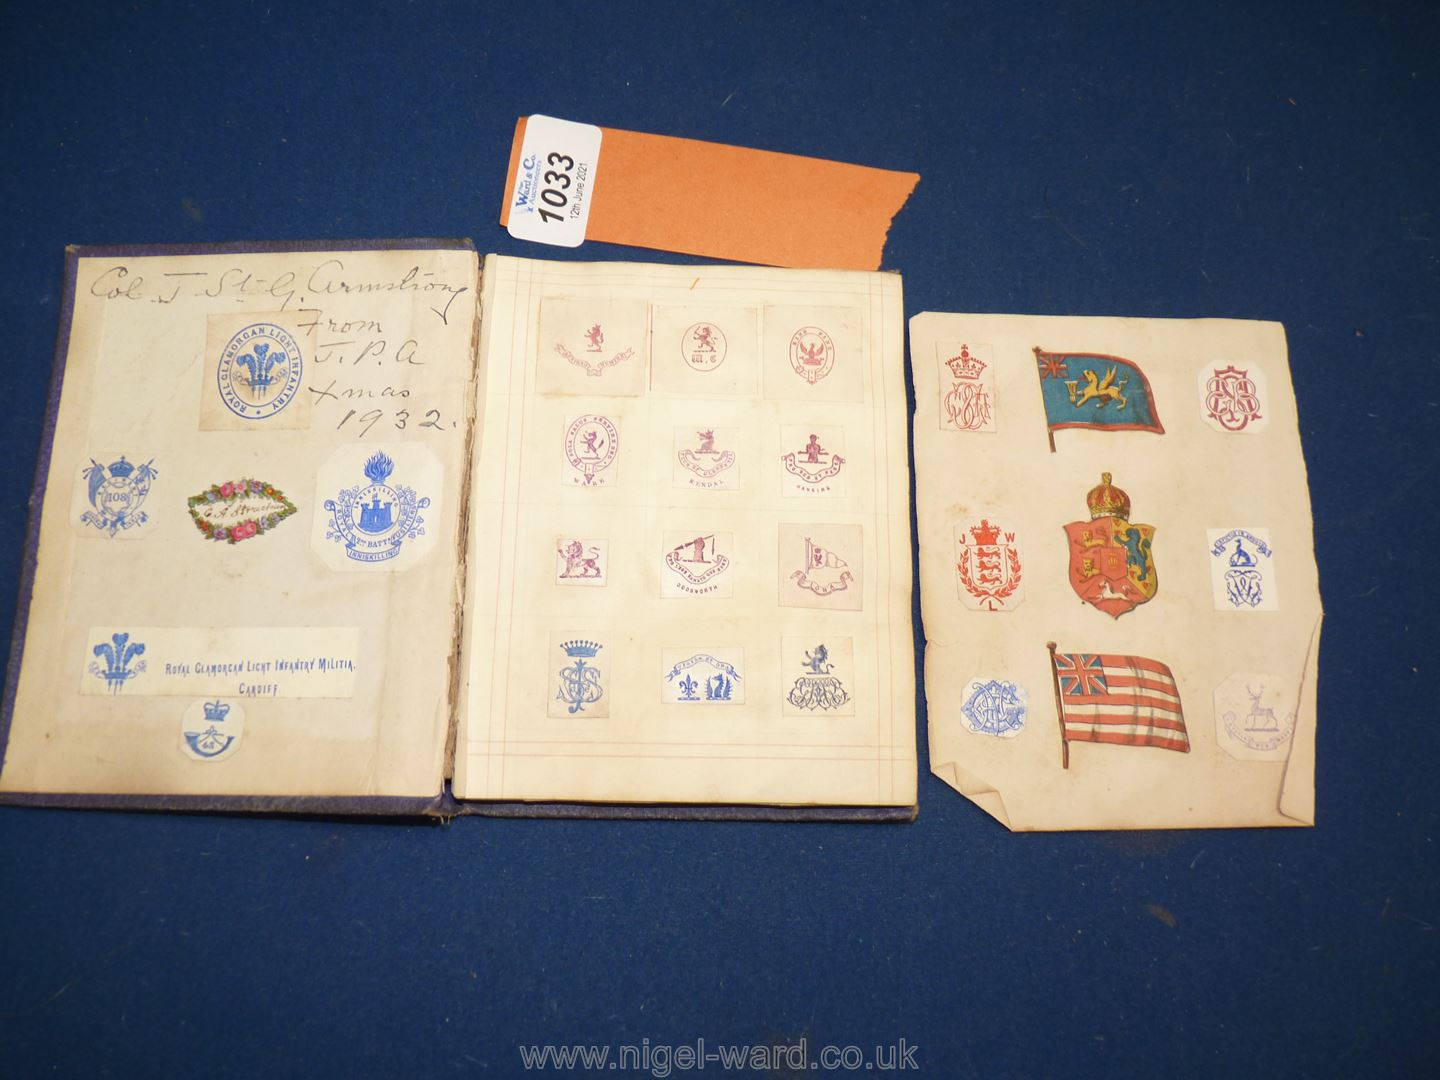 An interesting album of Coats of Arms, ciphers etc including Queen Victoria's family, nobility,